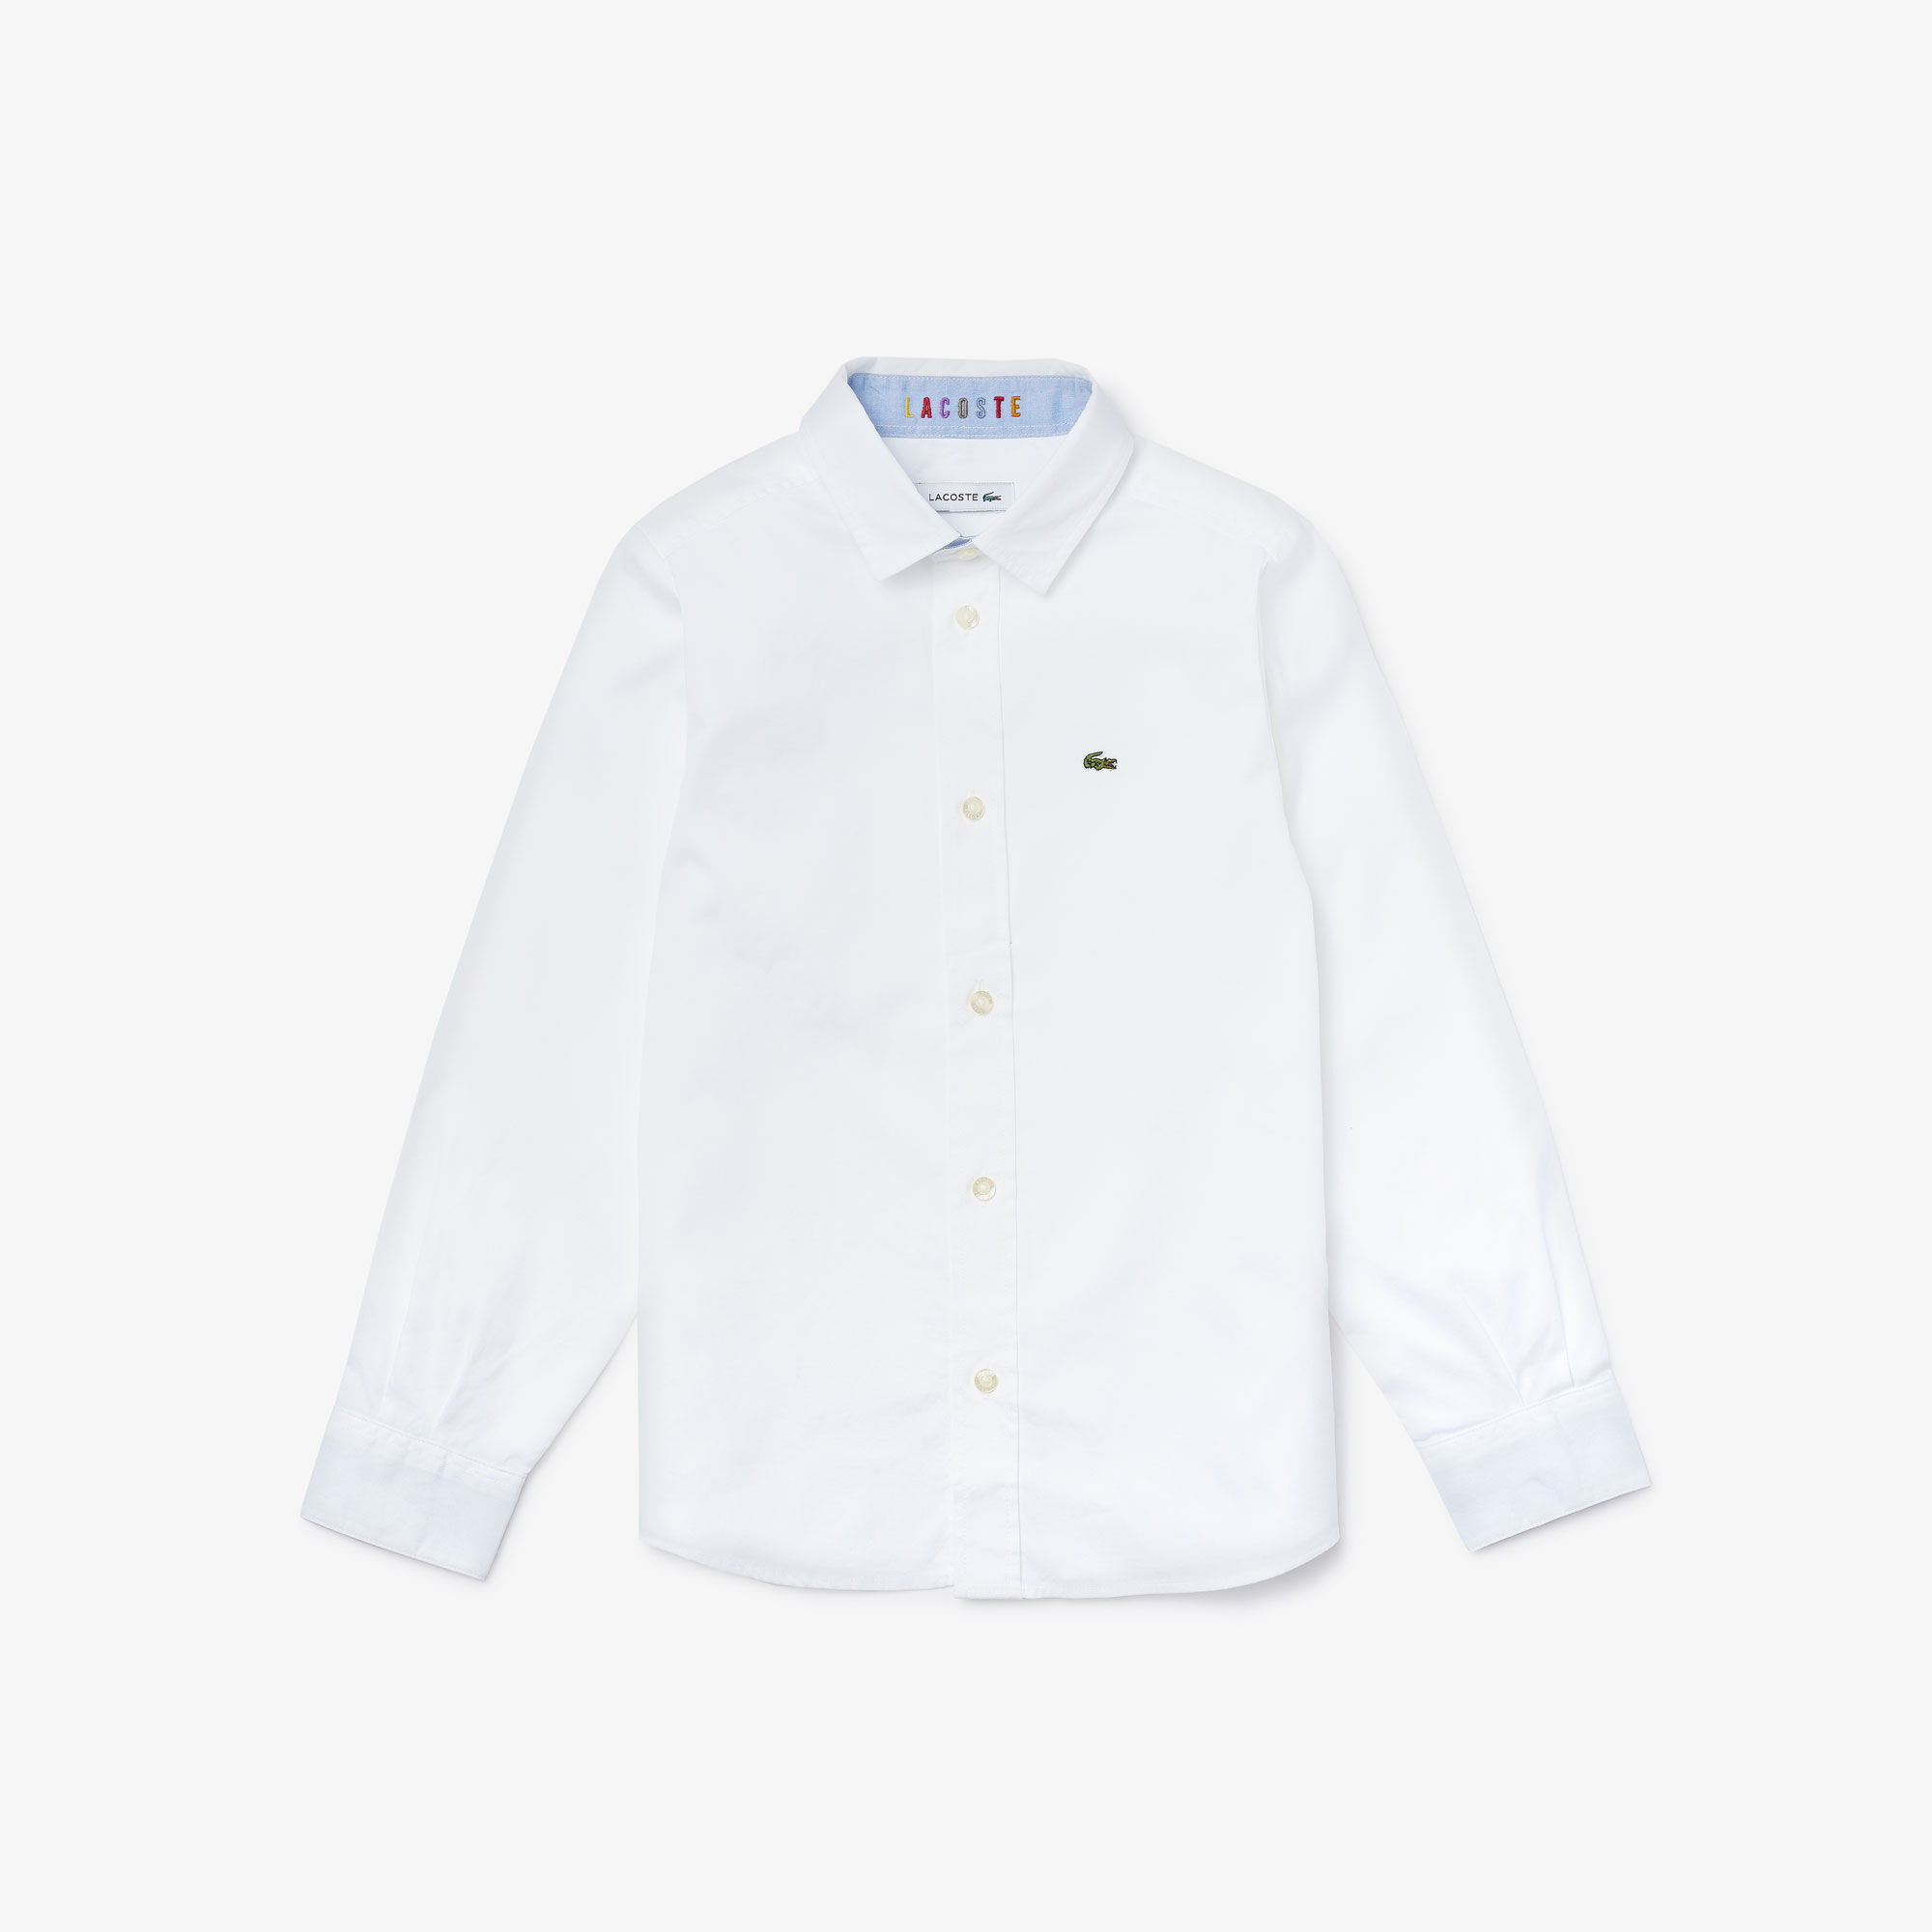 Boys' Contrast Finishes Oxford Cotton Shirt